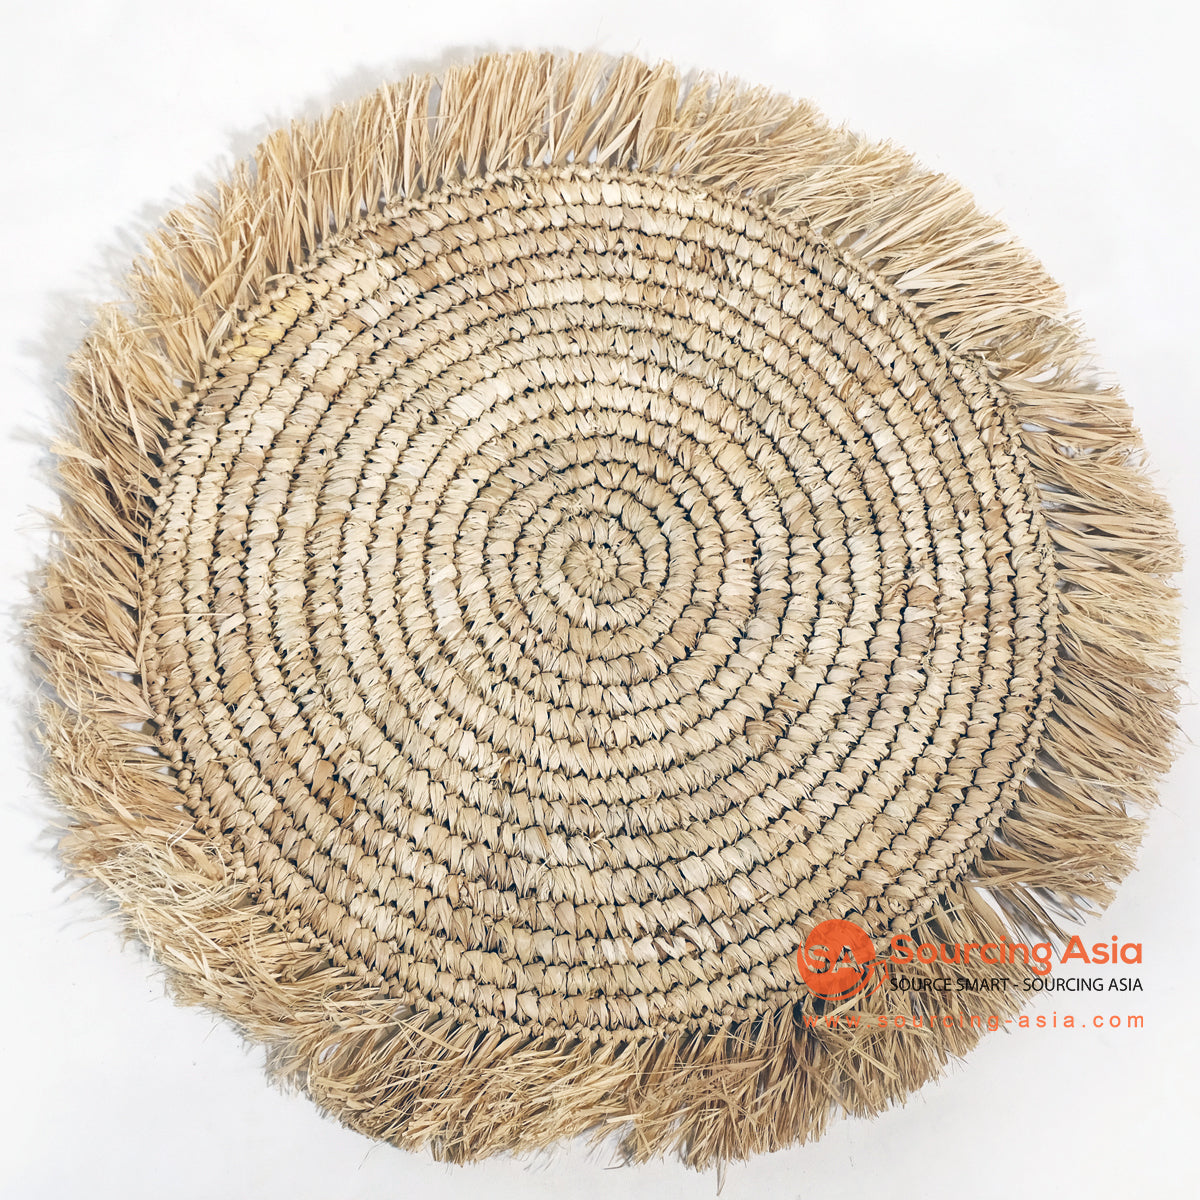 MRC012 NATURAL RAFFIA PALM ROUND PLACEMAT